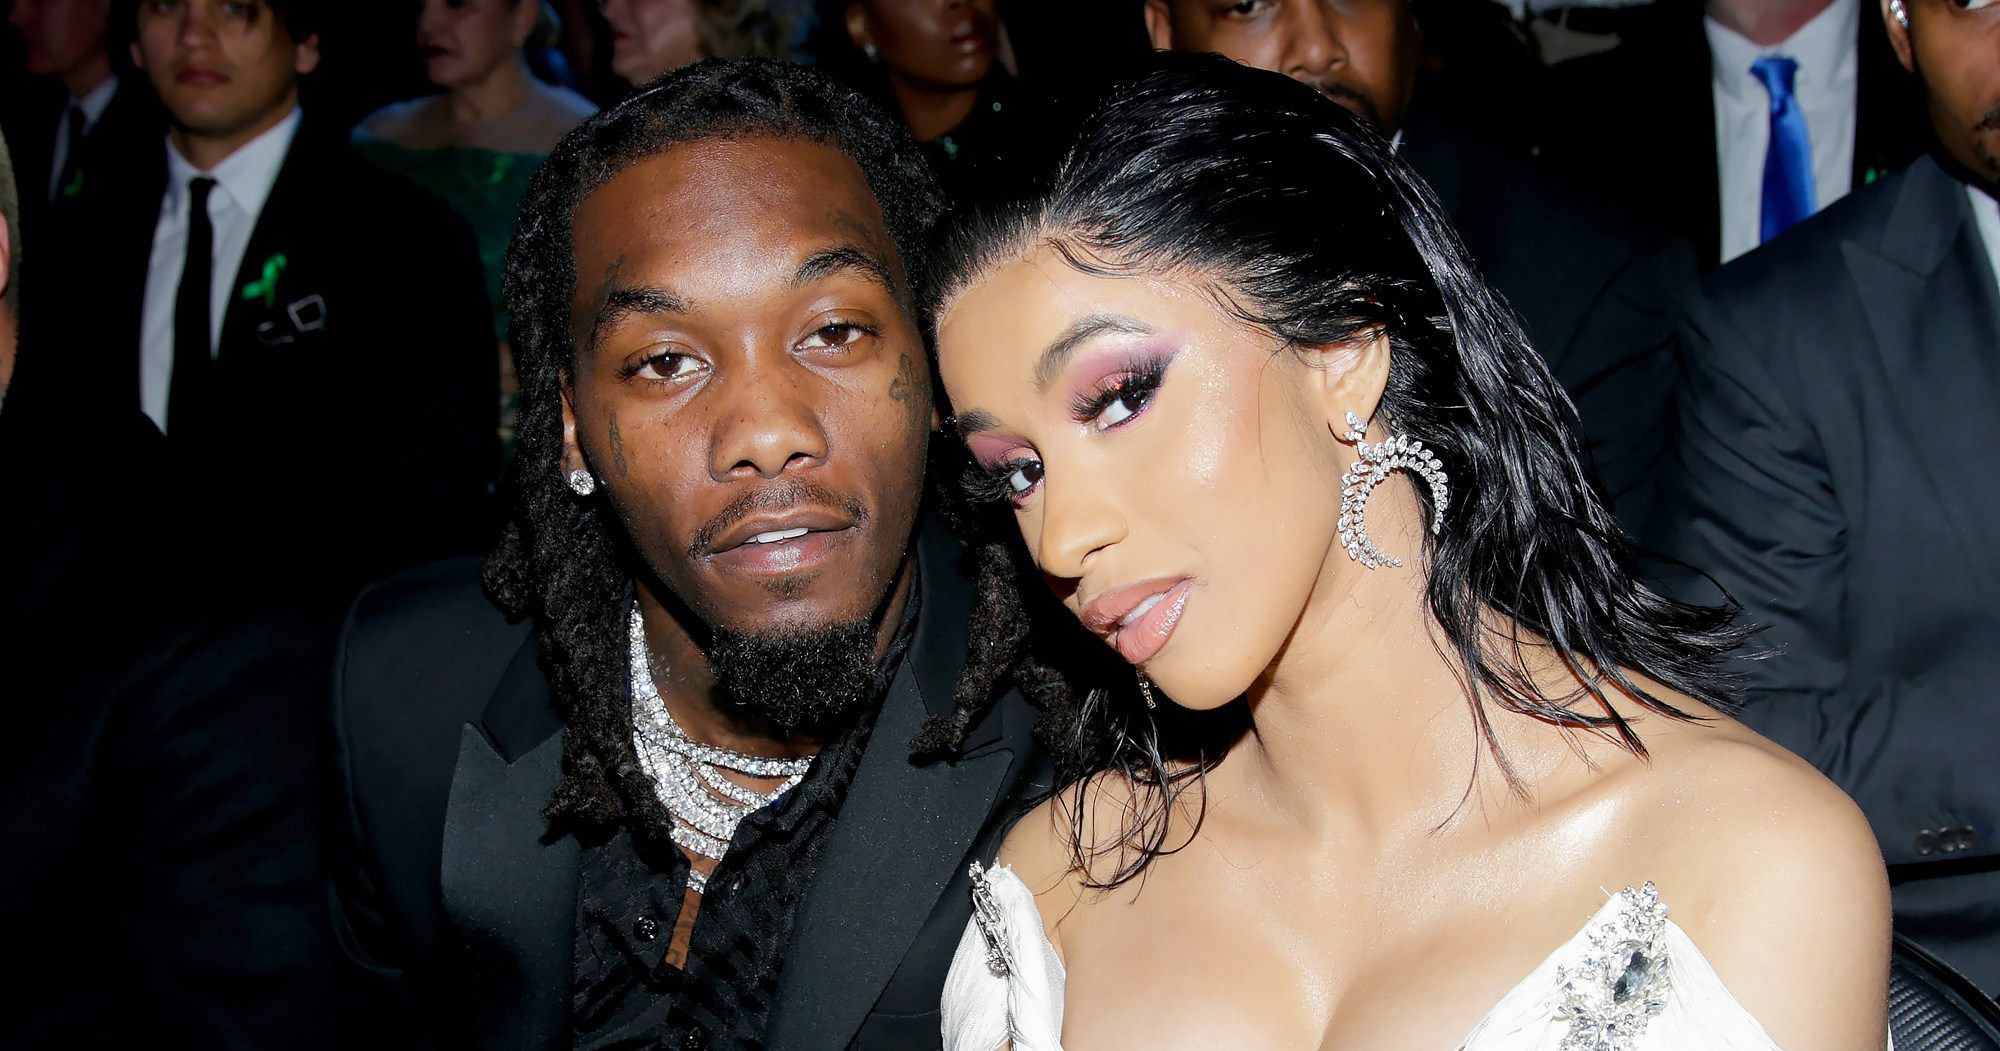 Cardi B Shares First Family Photo With Kulture and Offset